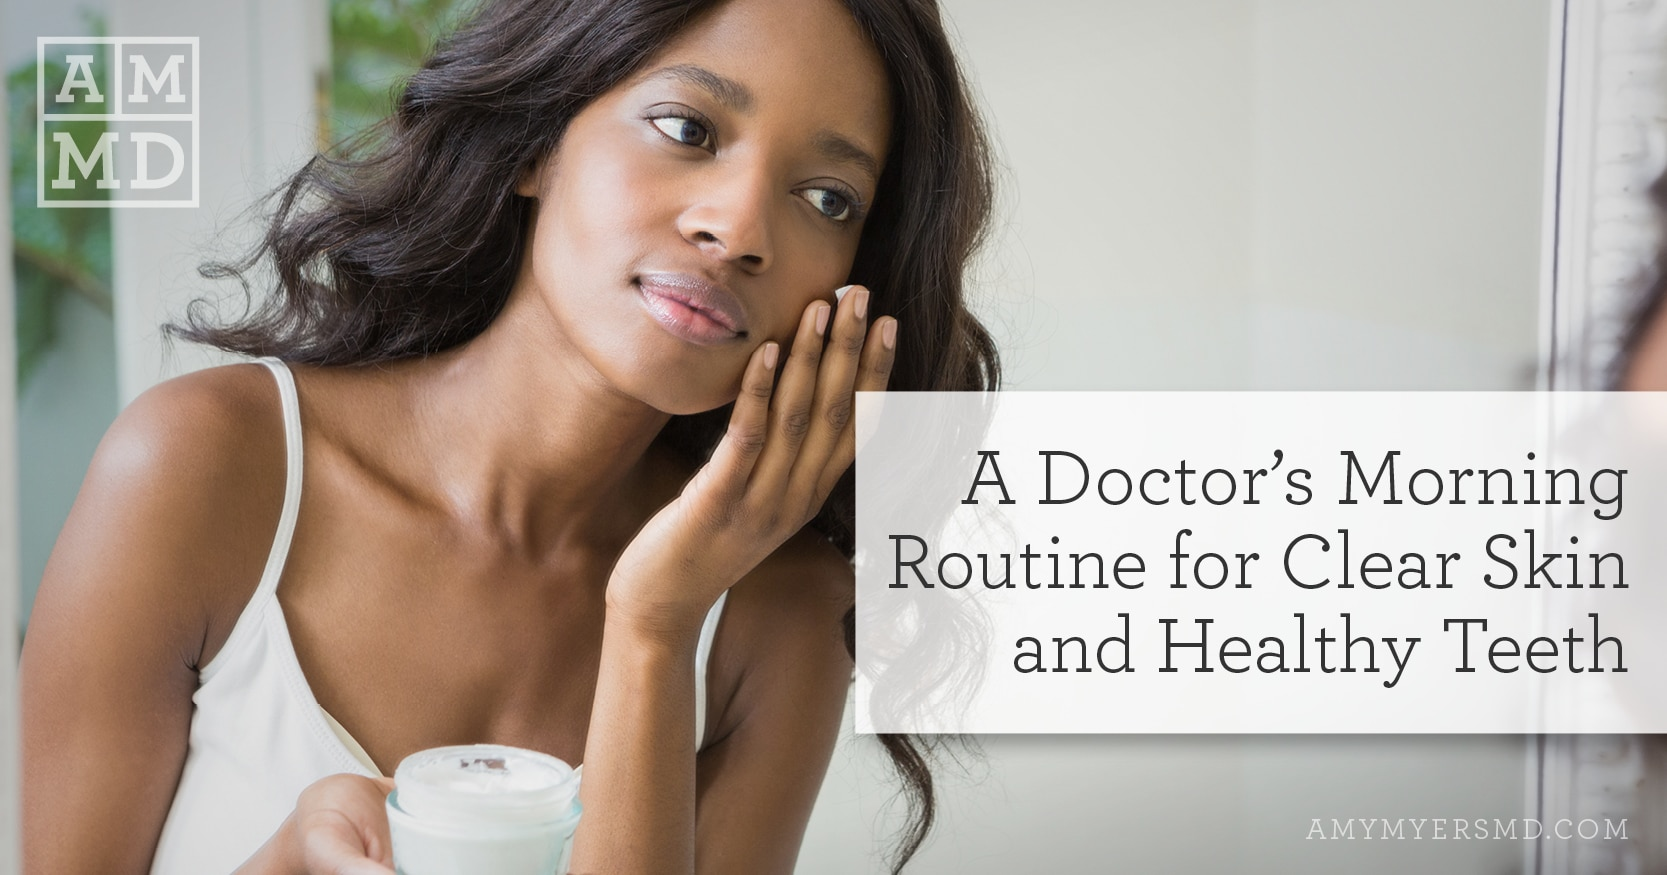 A Doctor's Morning Routine for Clear Skin and Healthy Teeth - A Woman Applying Face Cream - Featured Image - Amy Myers MD